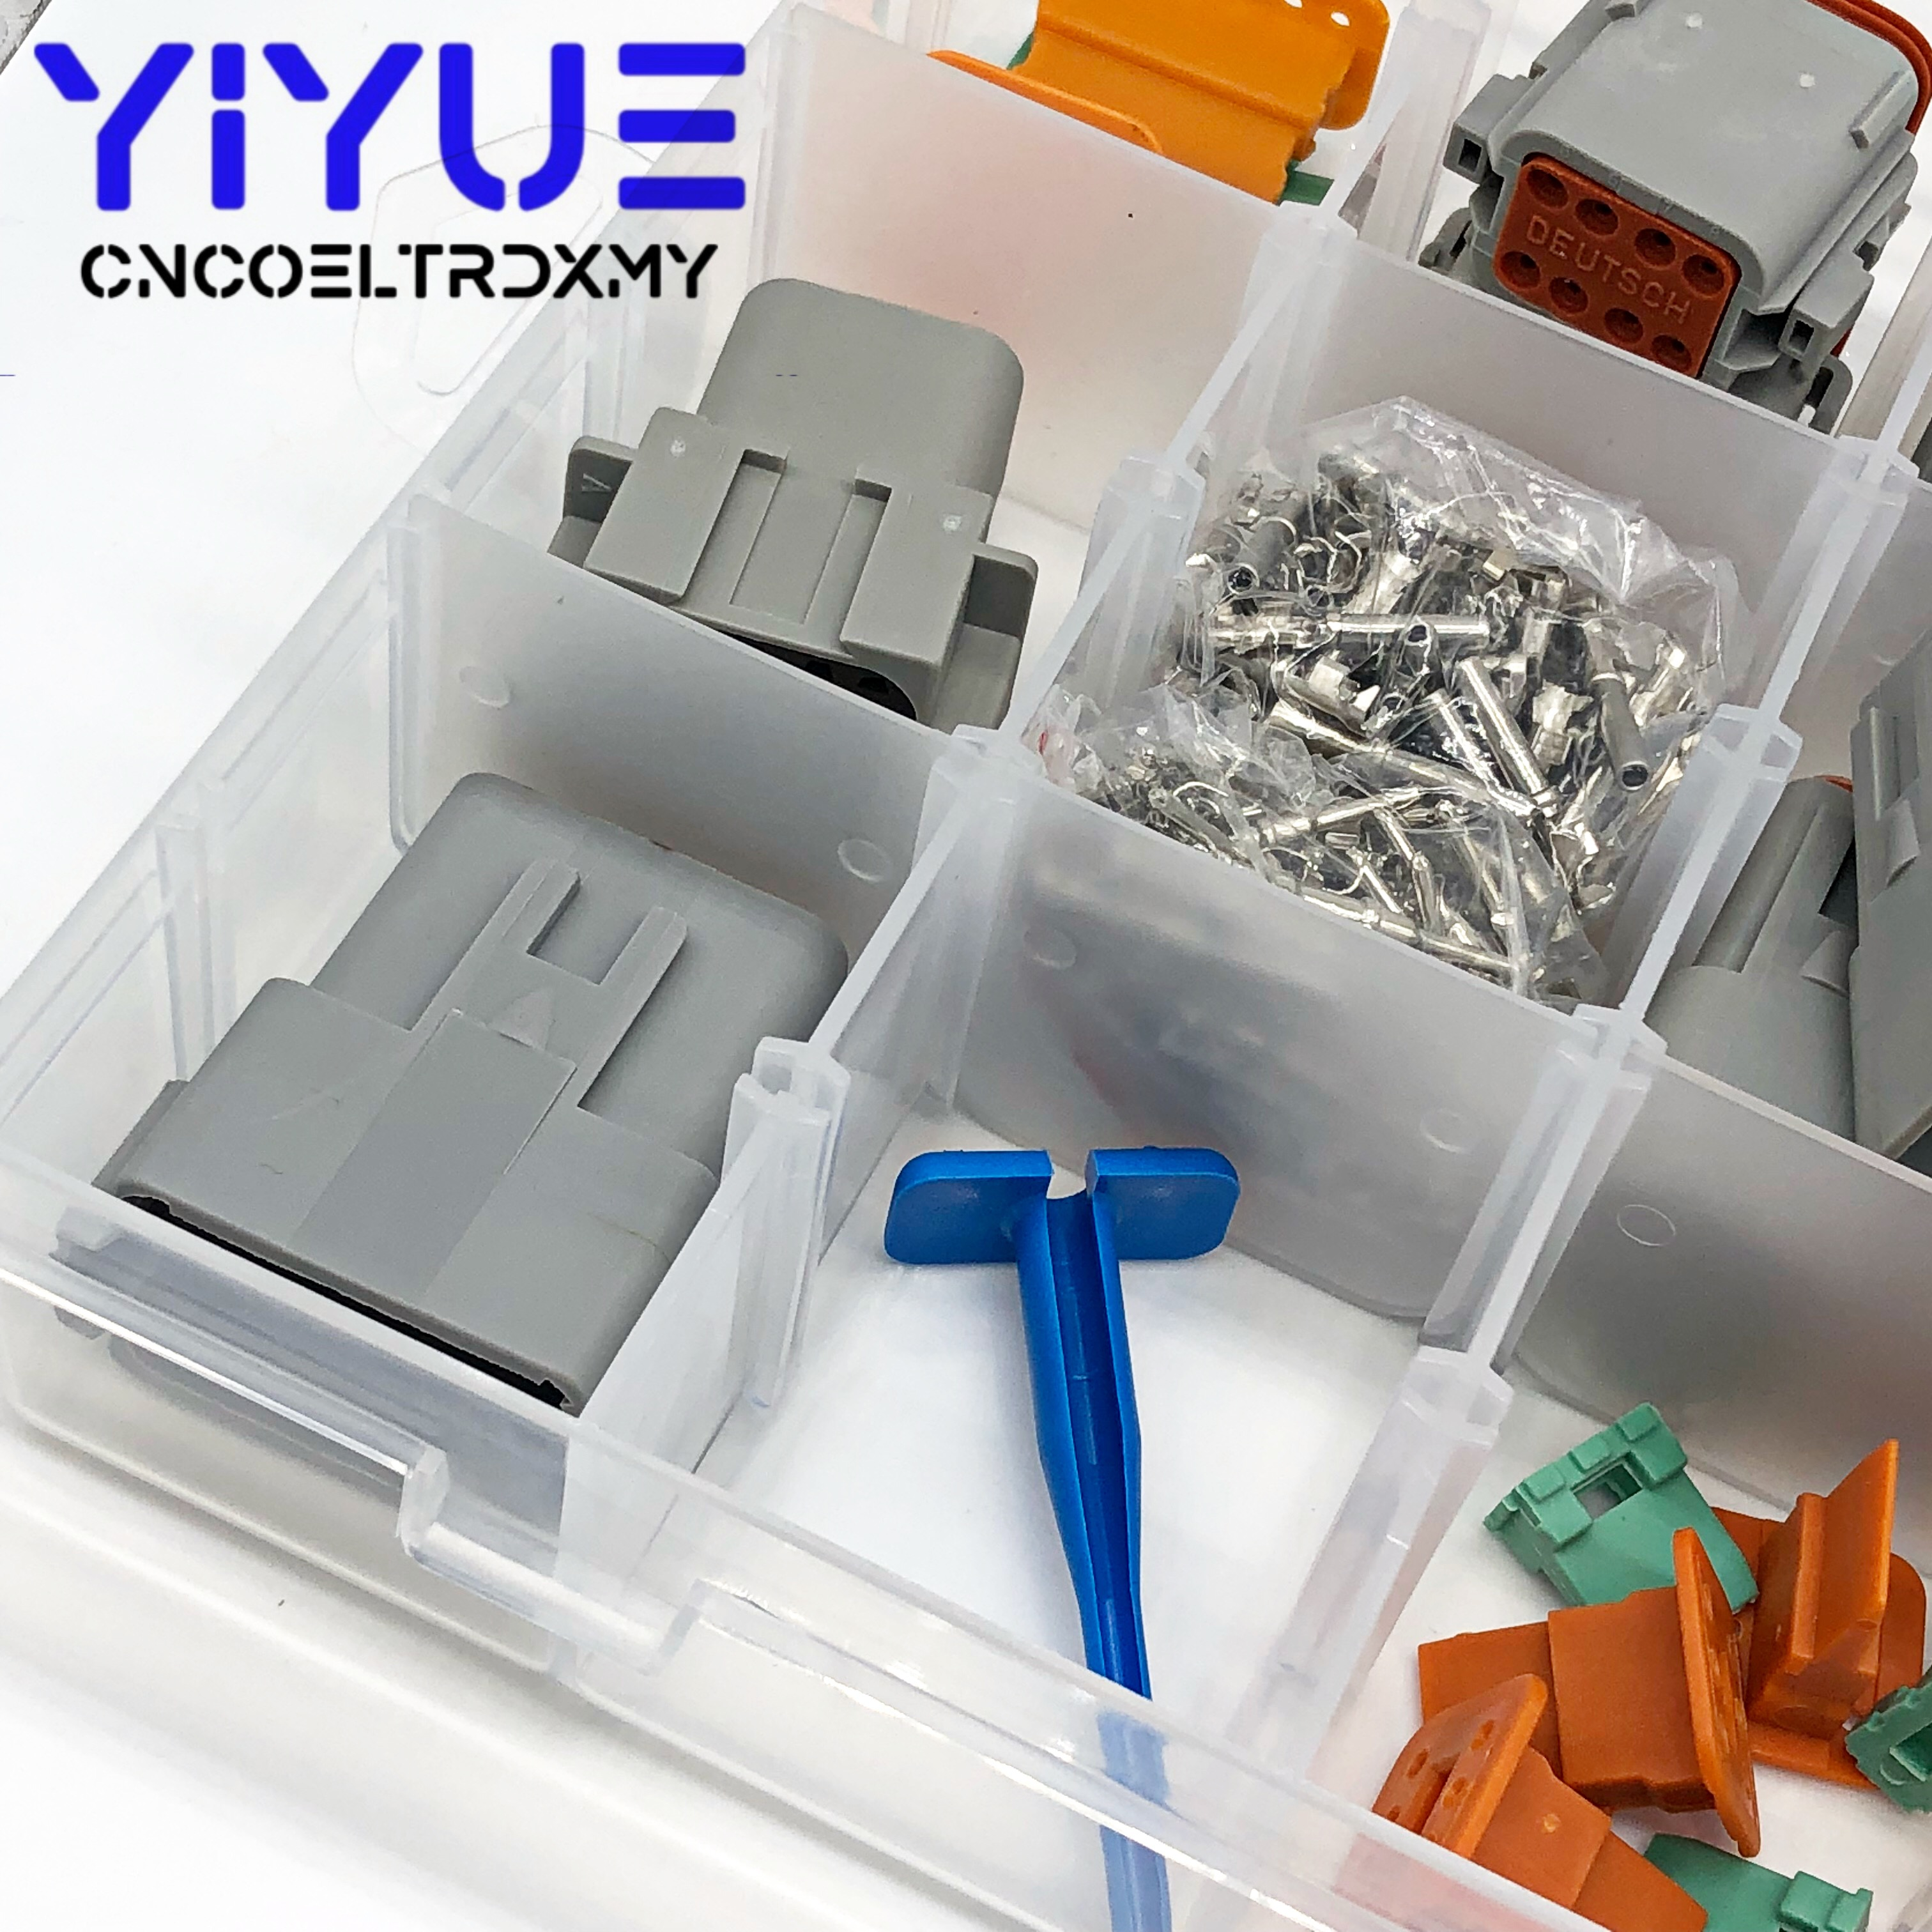 Image 3 - 225pcs Deutsch DT automotive connectors kit + 16 18AWG Crimp Terminals + removal tool 0411 336 1605-in Connectors from Lights & Lighting